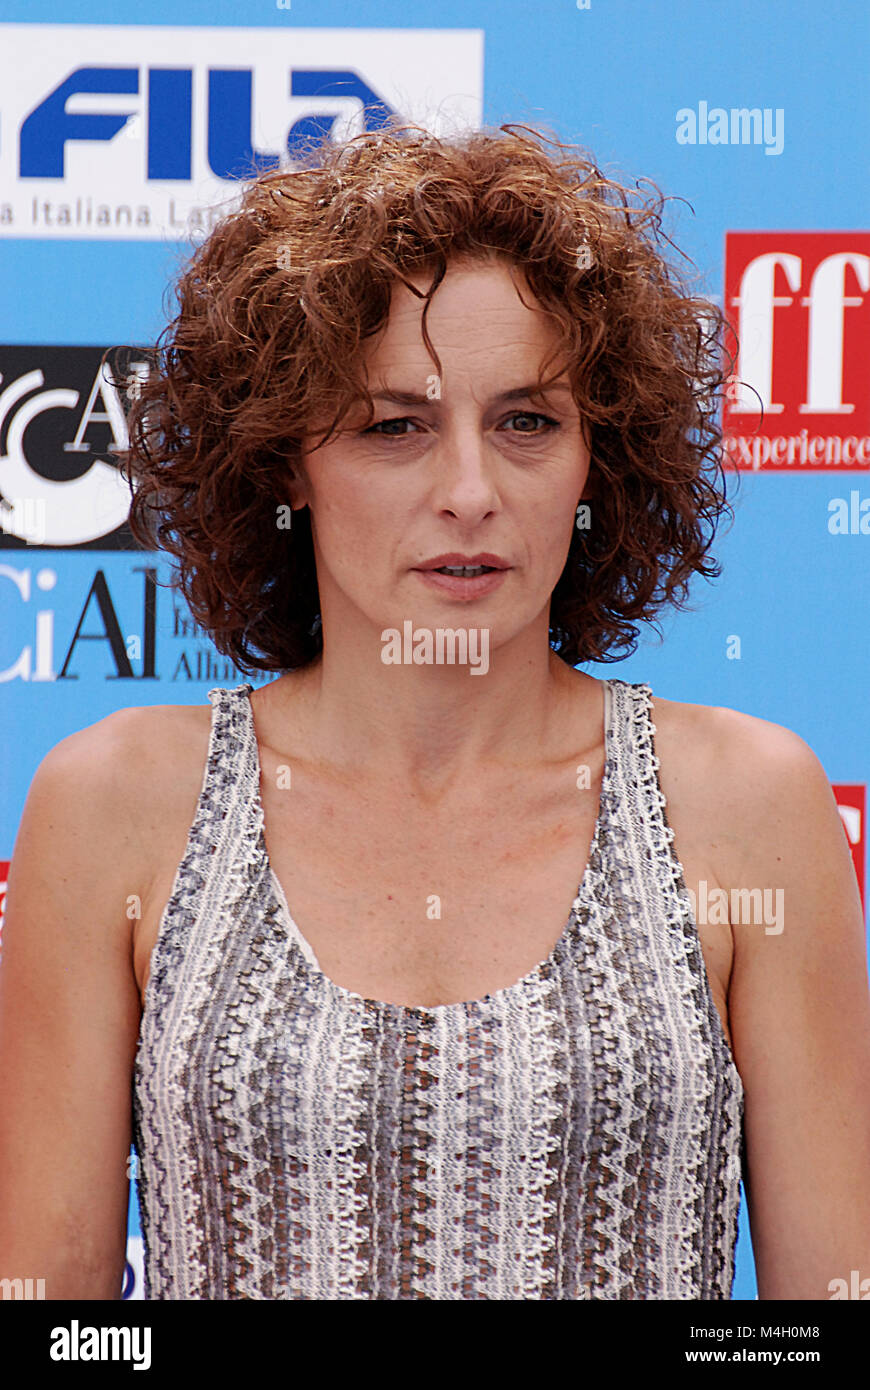 Giffoni Valle Piana, Sa, Italy - July 17, 2016 : Lidia Vitale at Giffoni Film Festival 2016 - on July 17, 2016 in - Stock Image